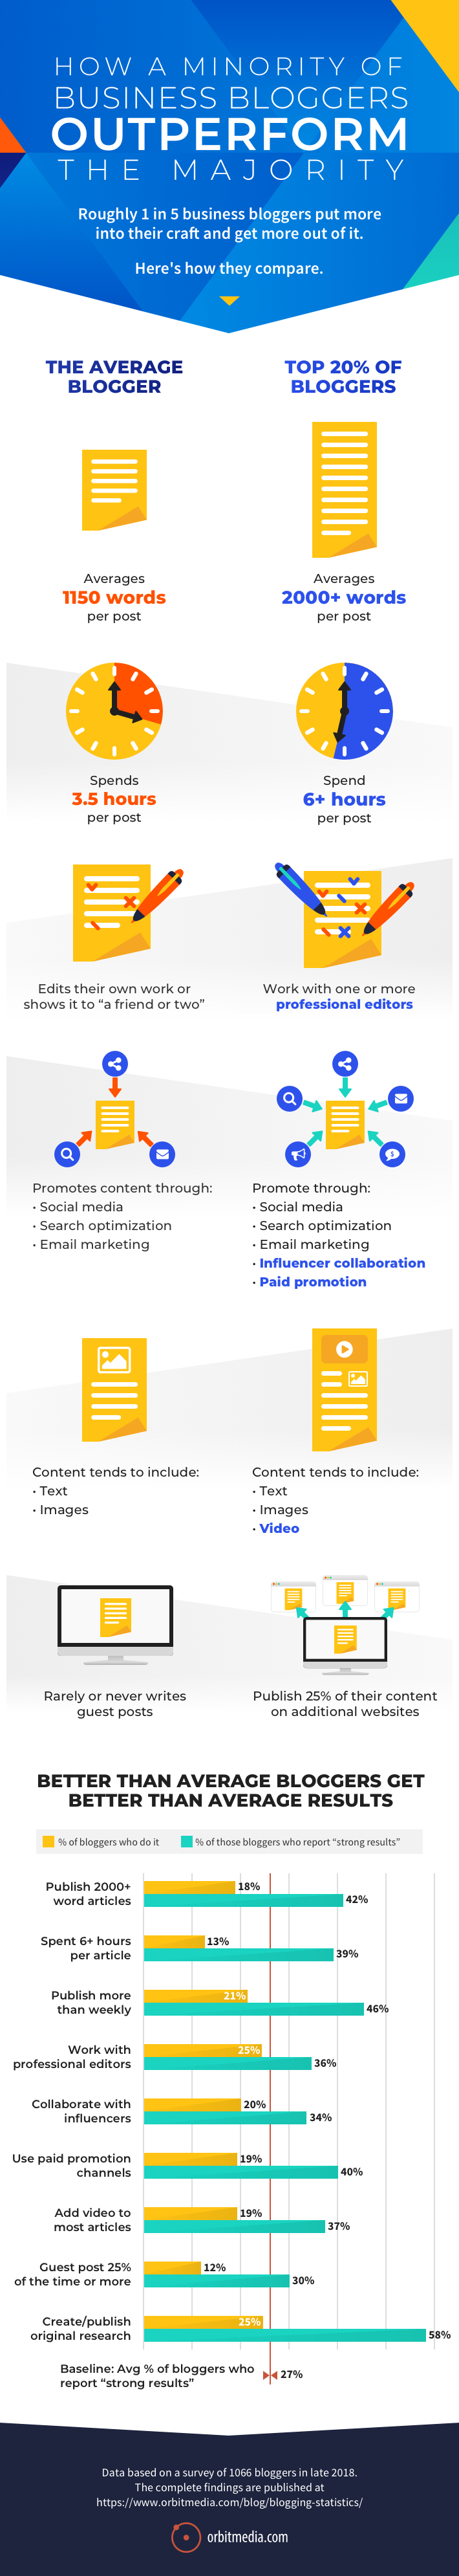 infographic-blogger-difference-final